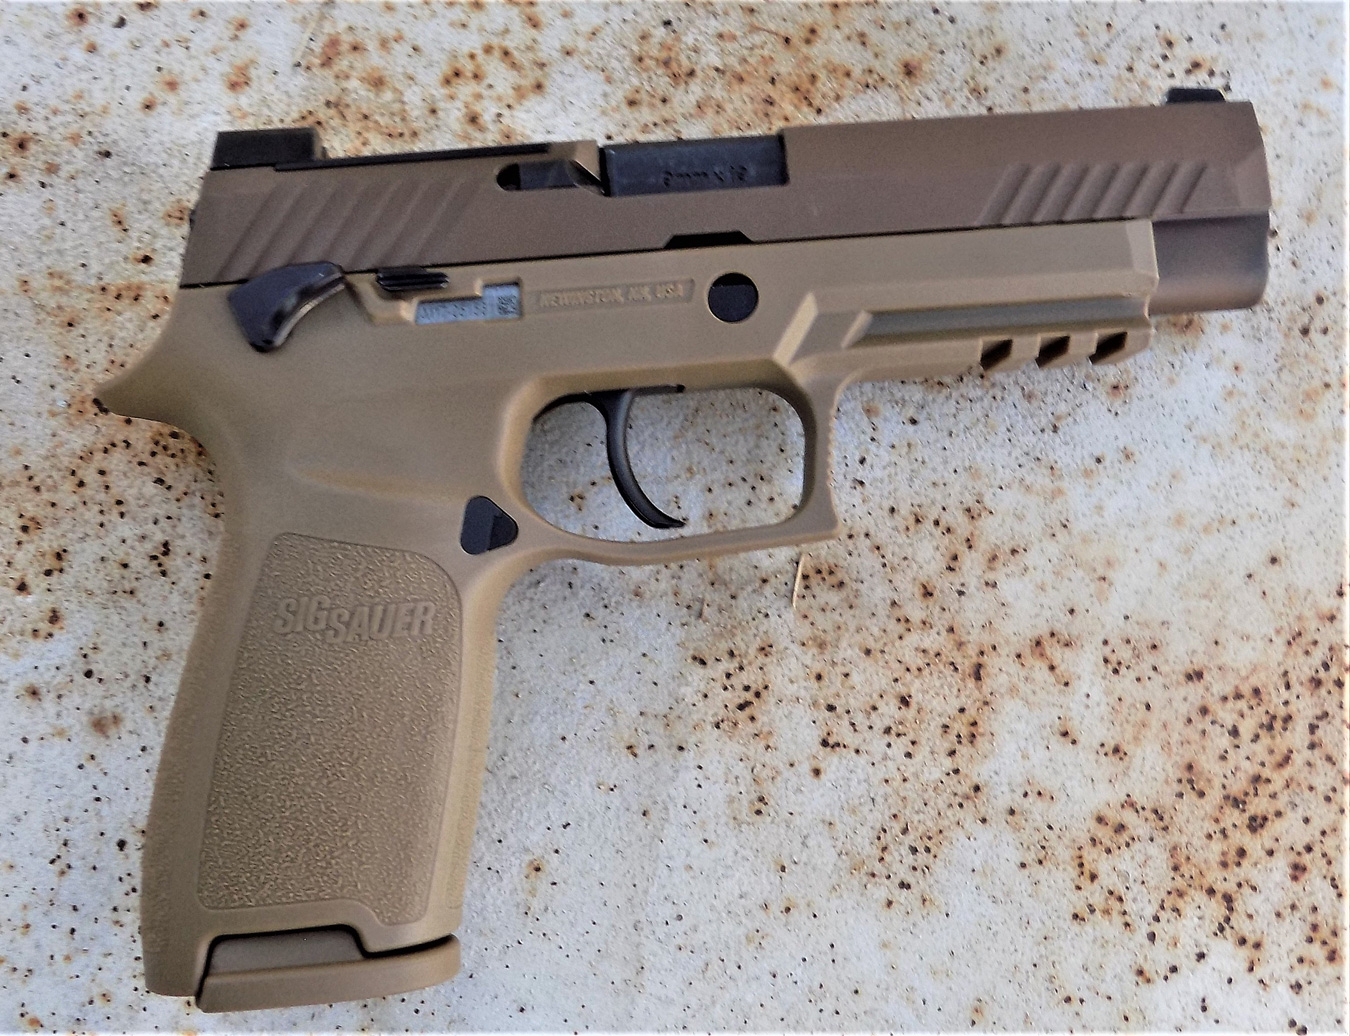 Review: SIG P320 M17 Civilian Model - The K-Var Armory